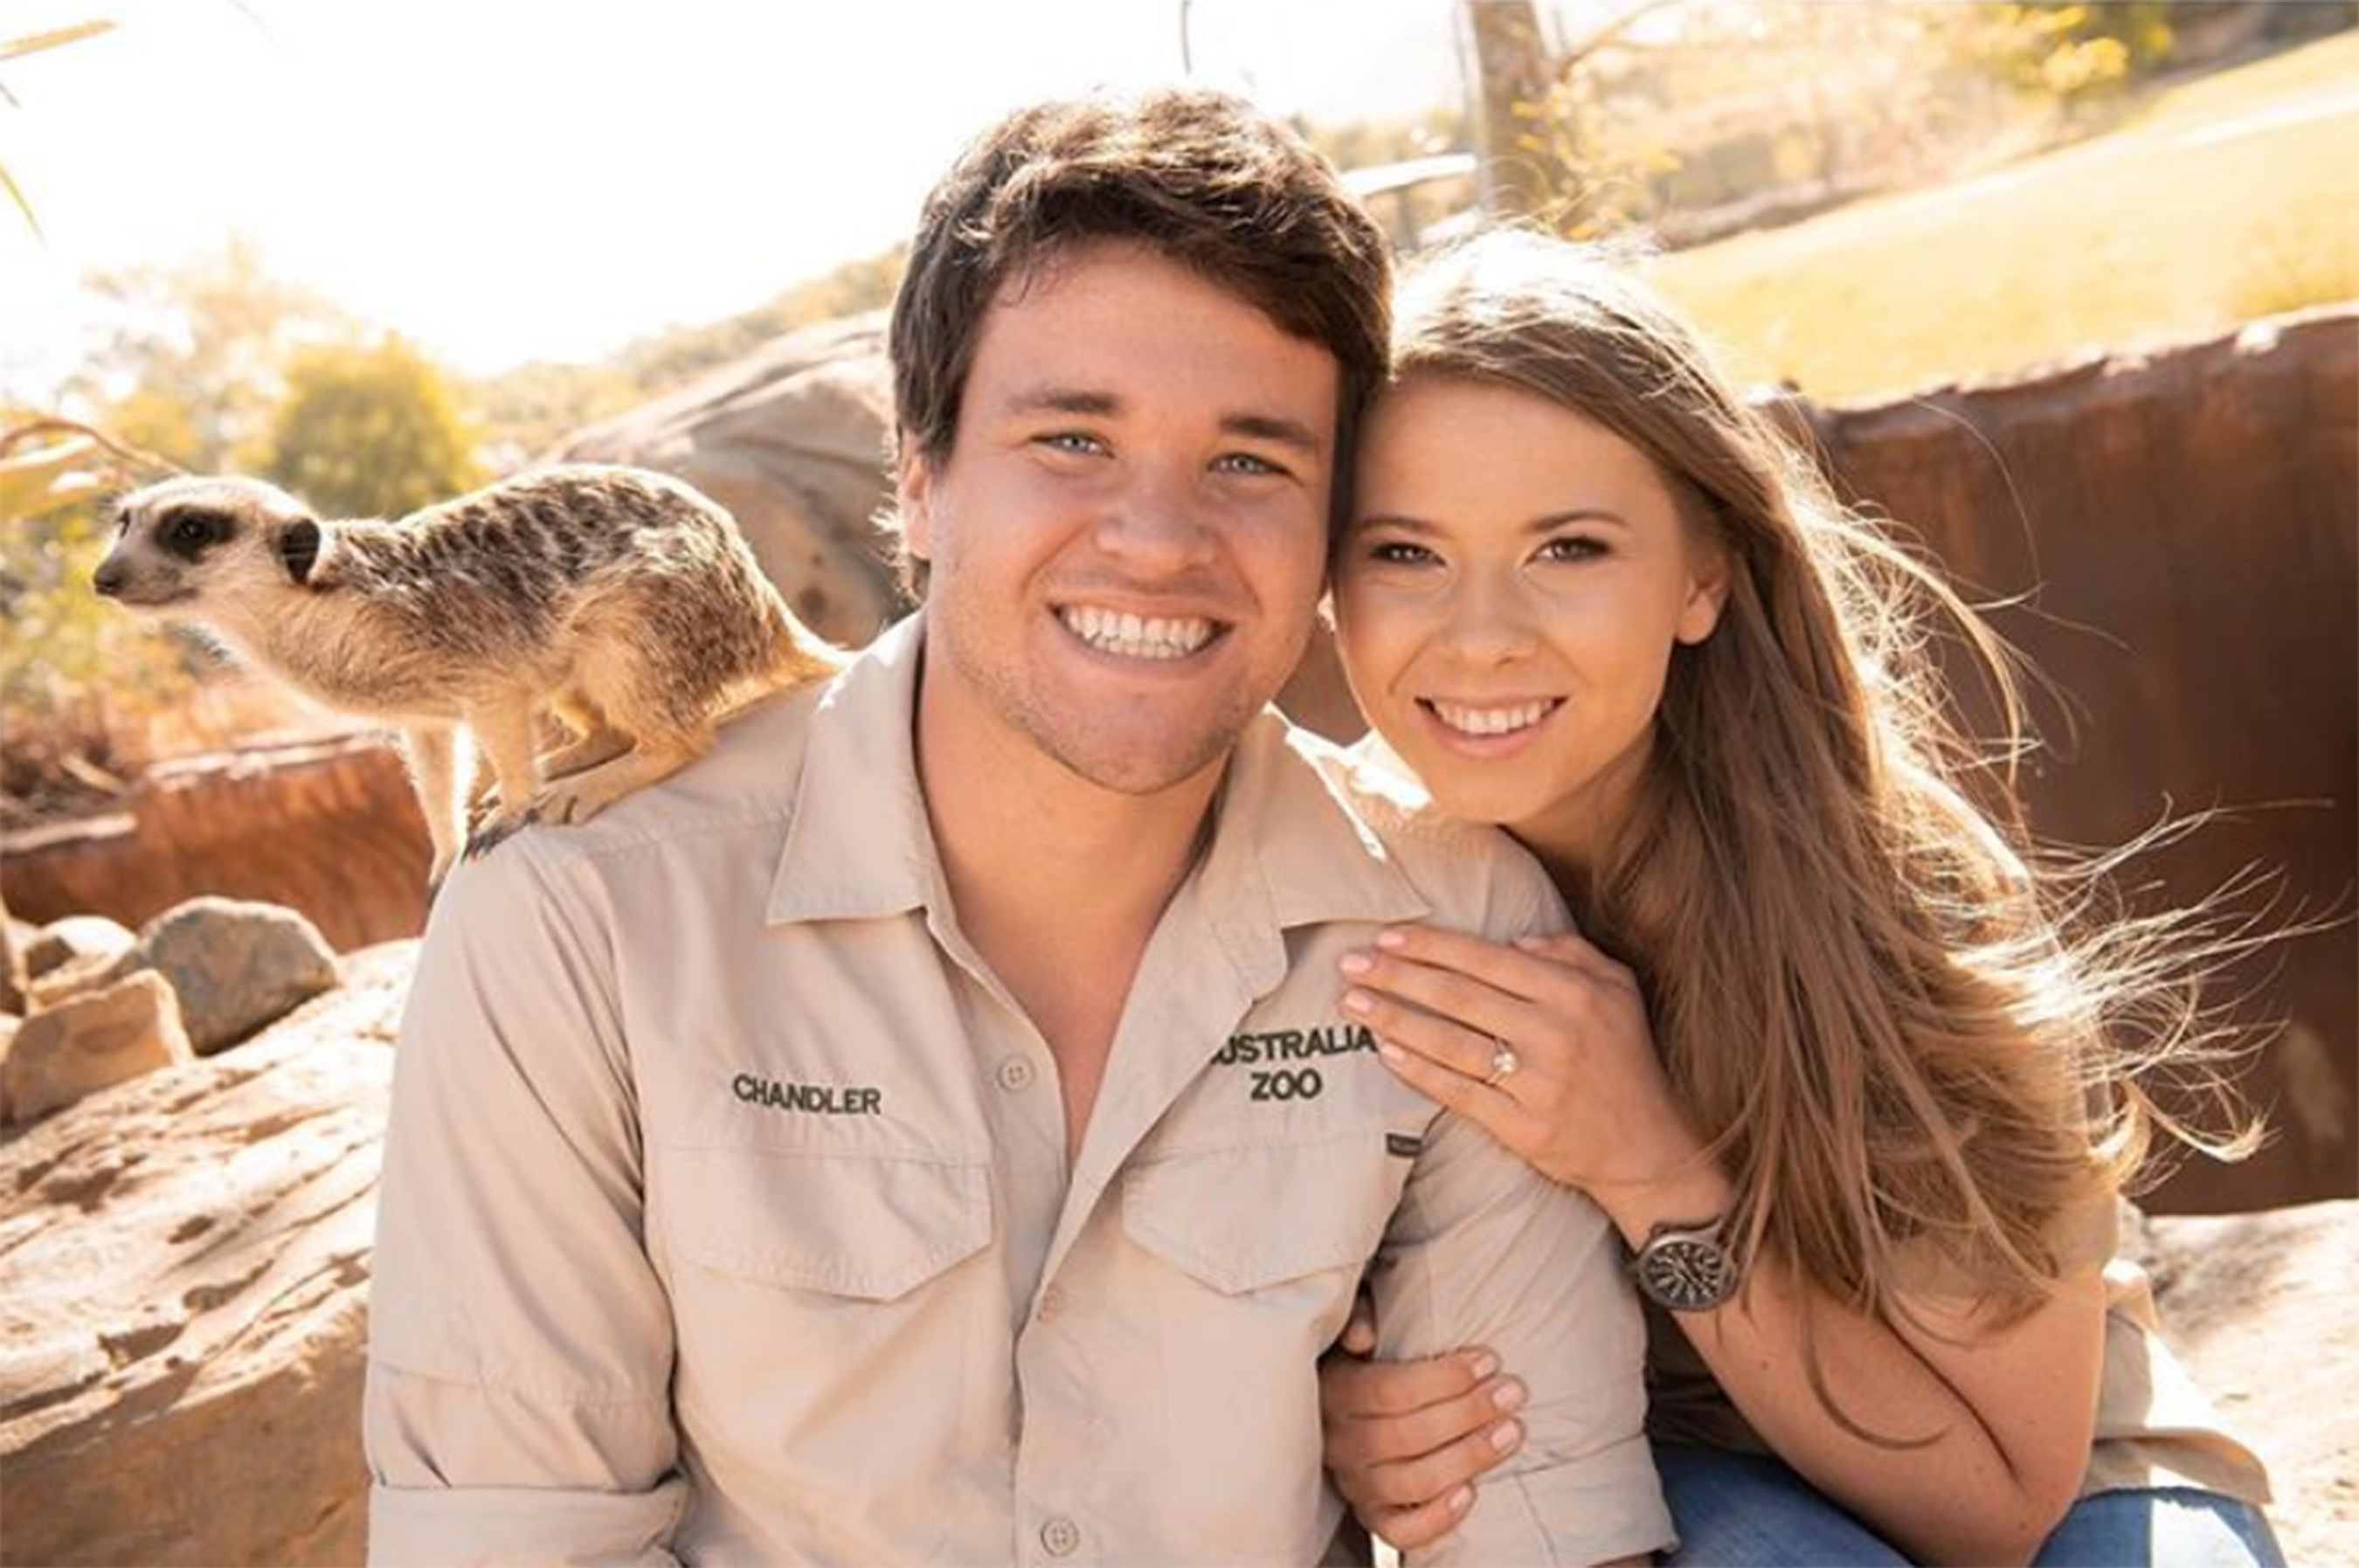 Chandler Powell and fiancée Bindi Irwin reveals their excitement for marraige - Here's everything you want to know